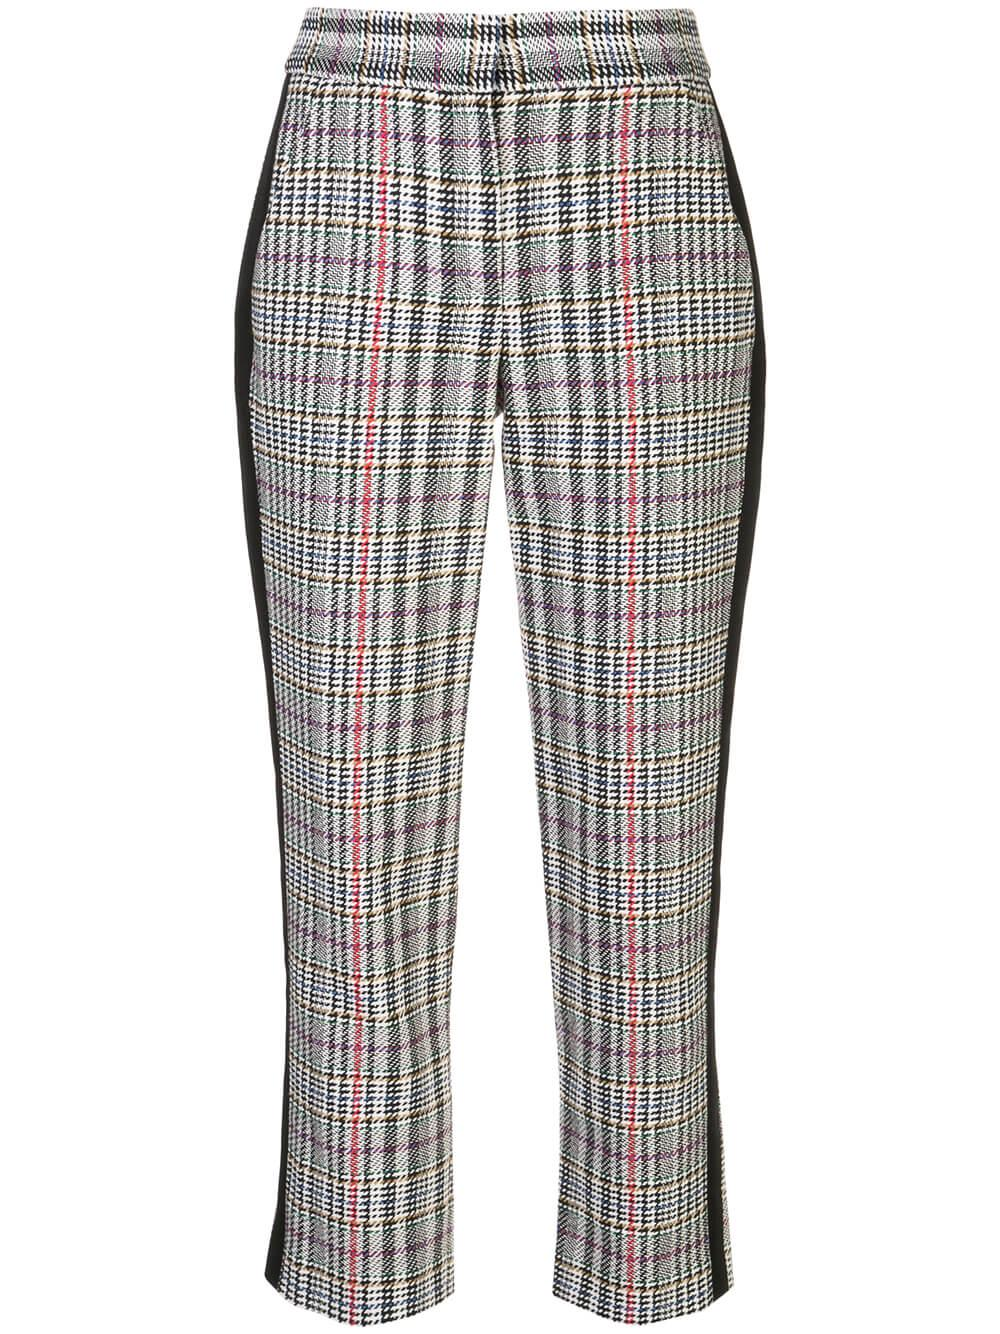 Gemini Plaid Pant